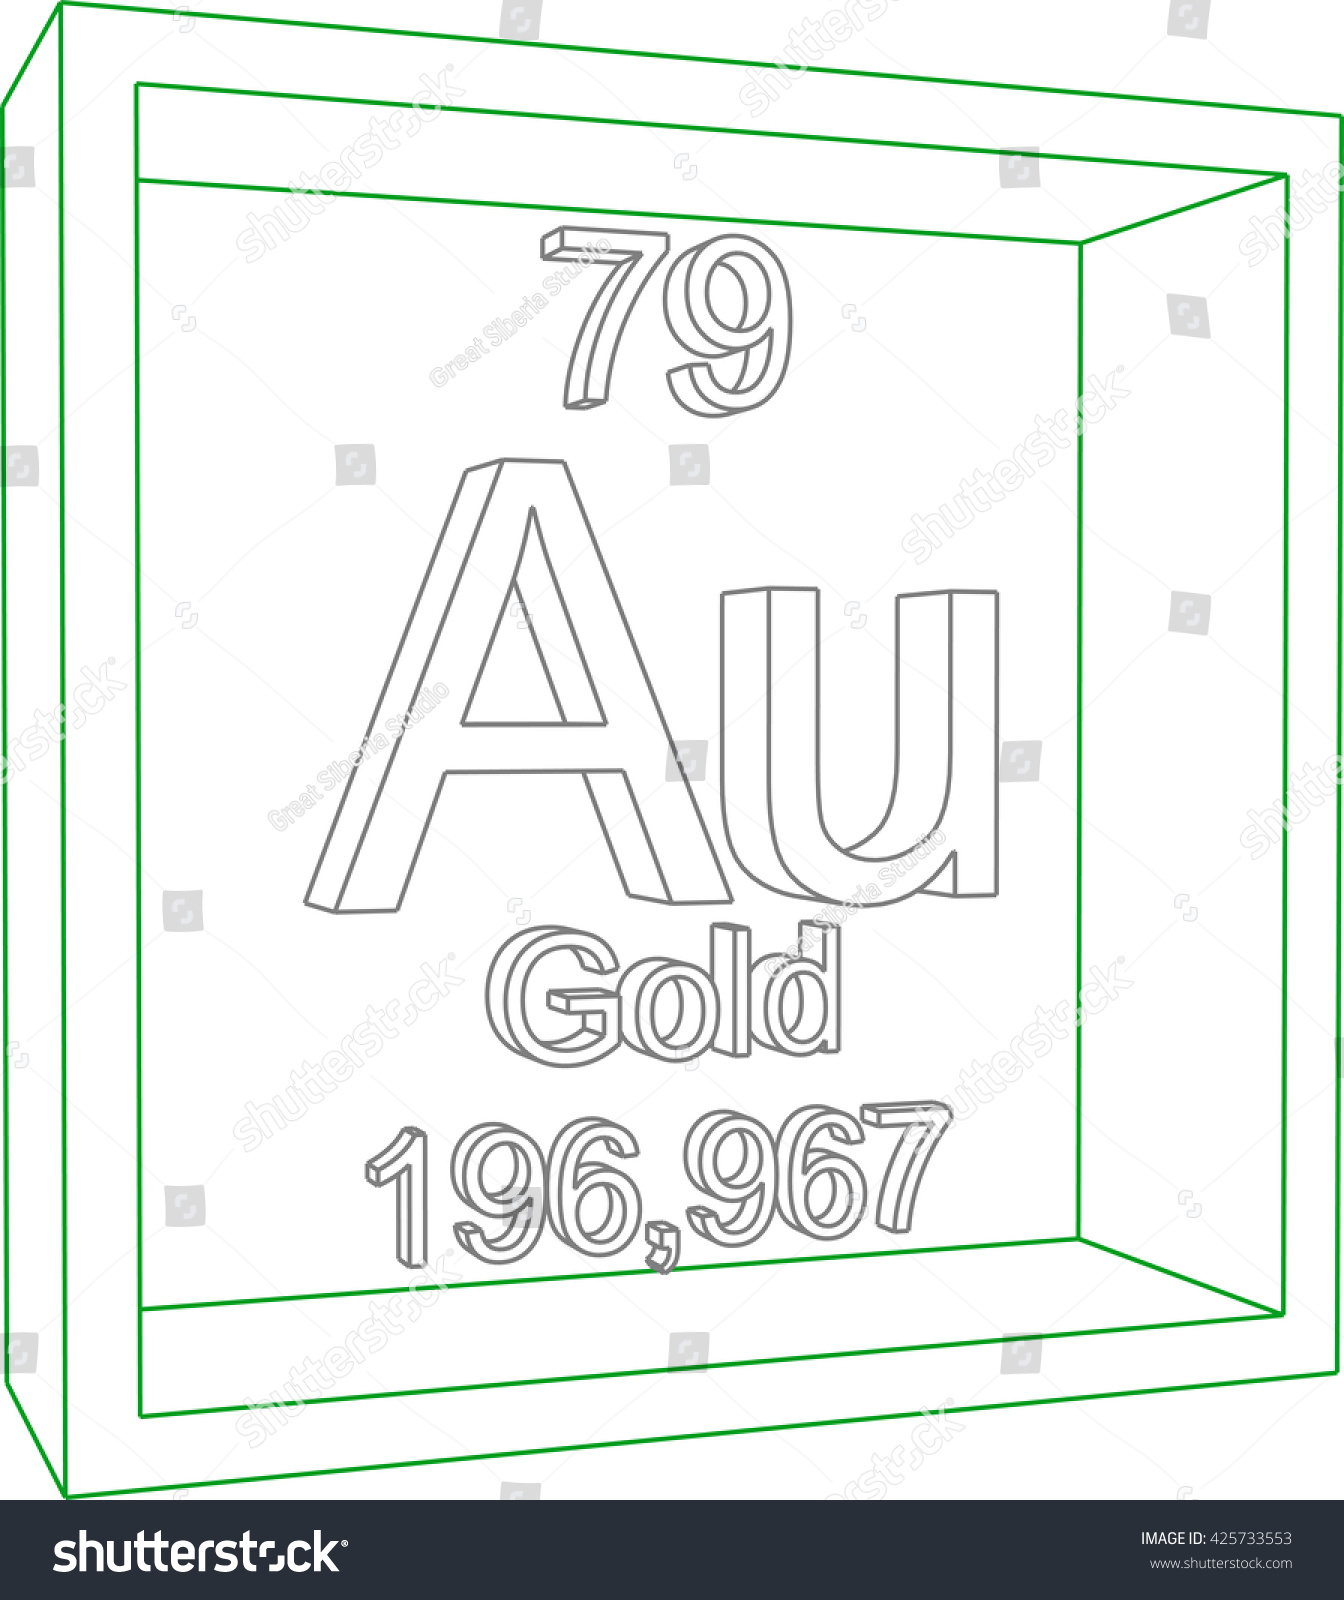 Periodic table elements gold stock vector 425733553 shutterstock periodic table of elements gold urtaz Gallery